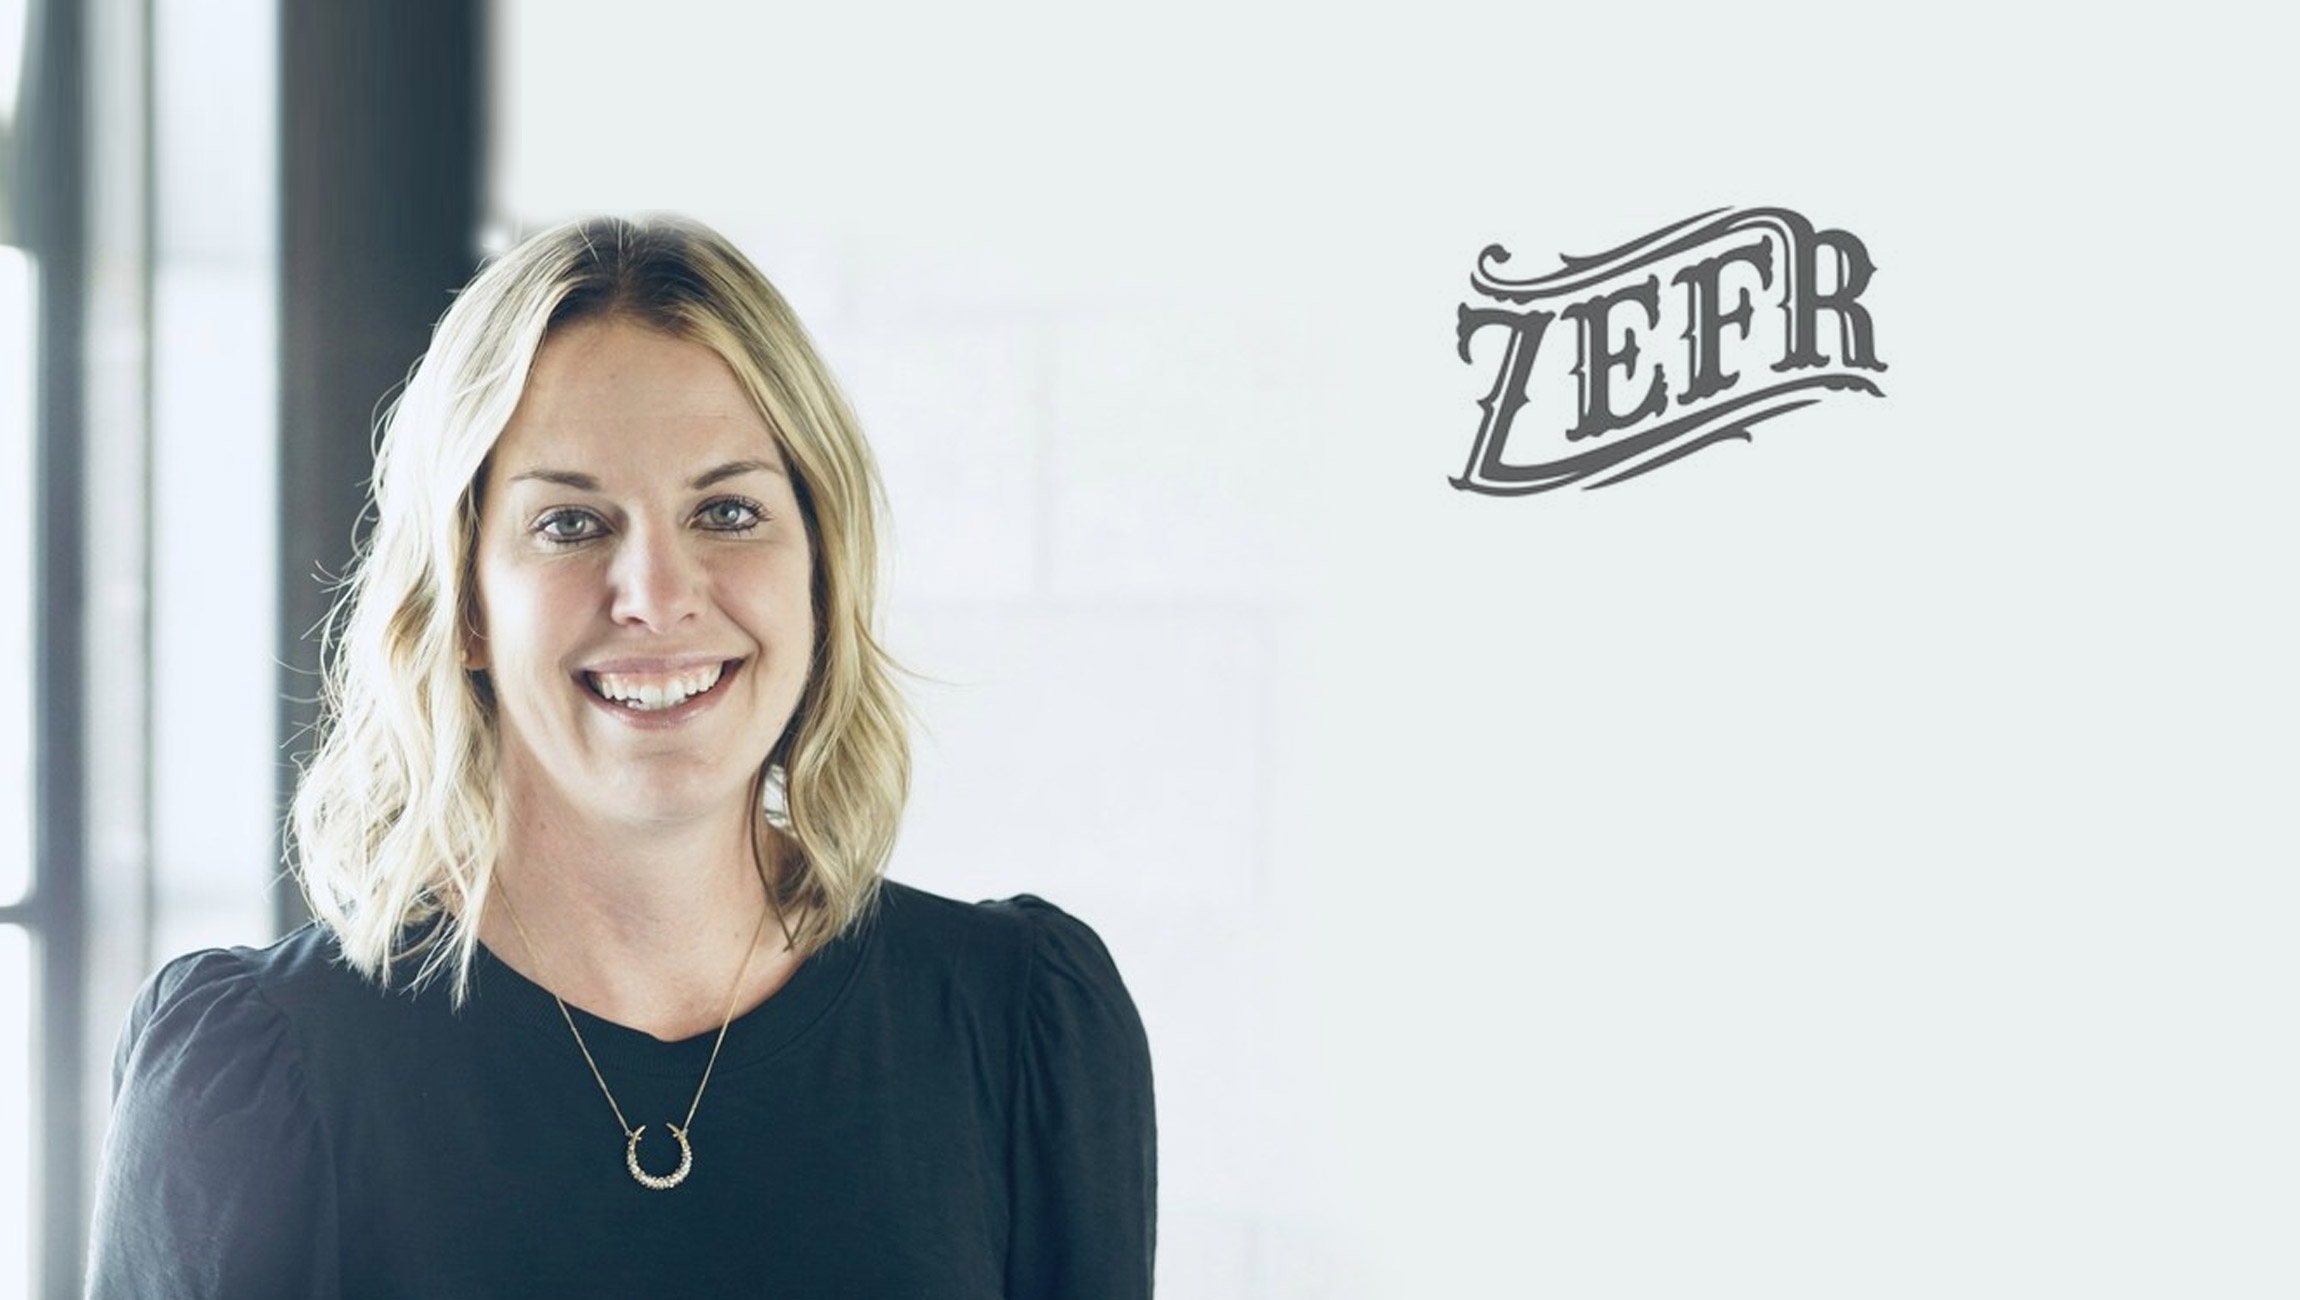 Zefr, Leader In Brand Suitability For Video, Appoints Kelsey Garigan As Executive Vice President, Head Of North American Sales